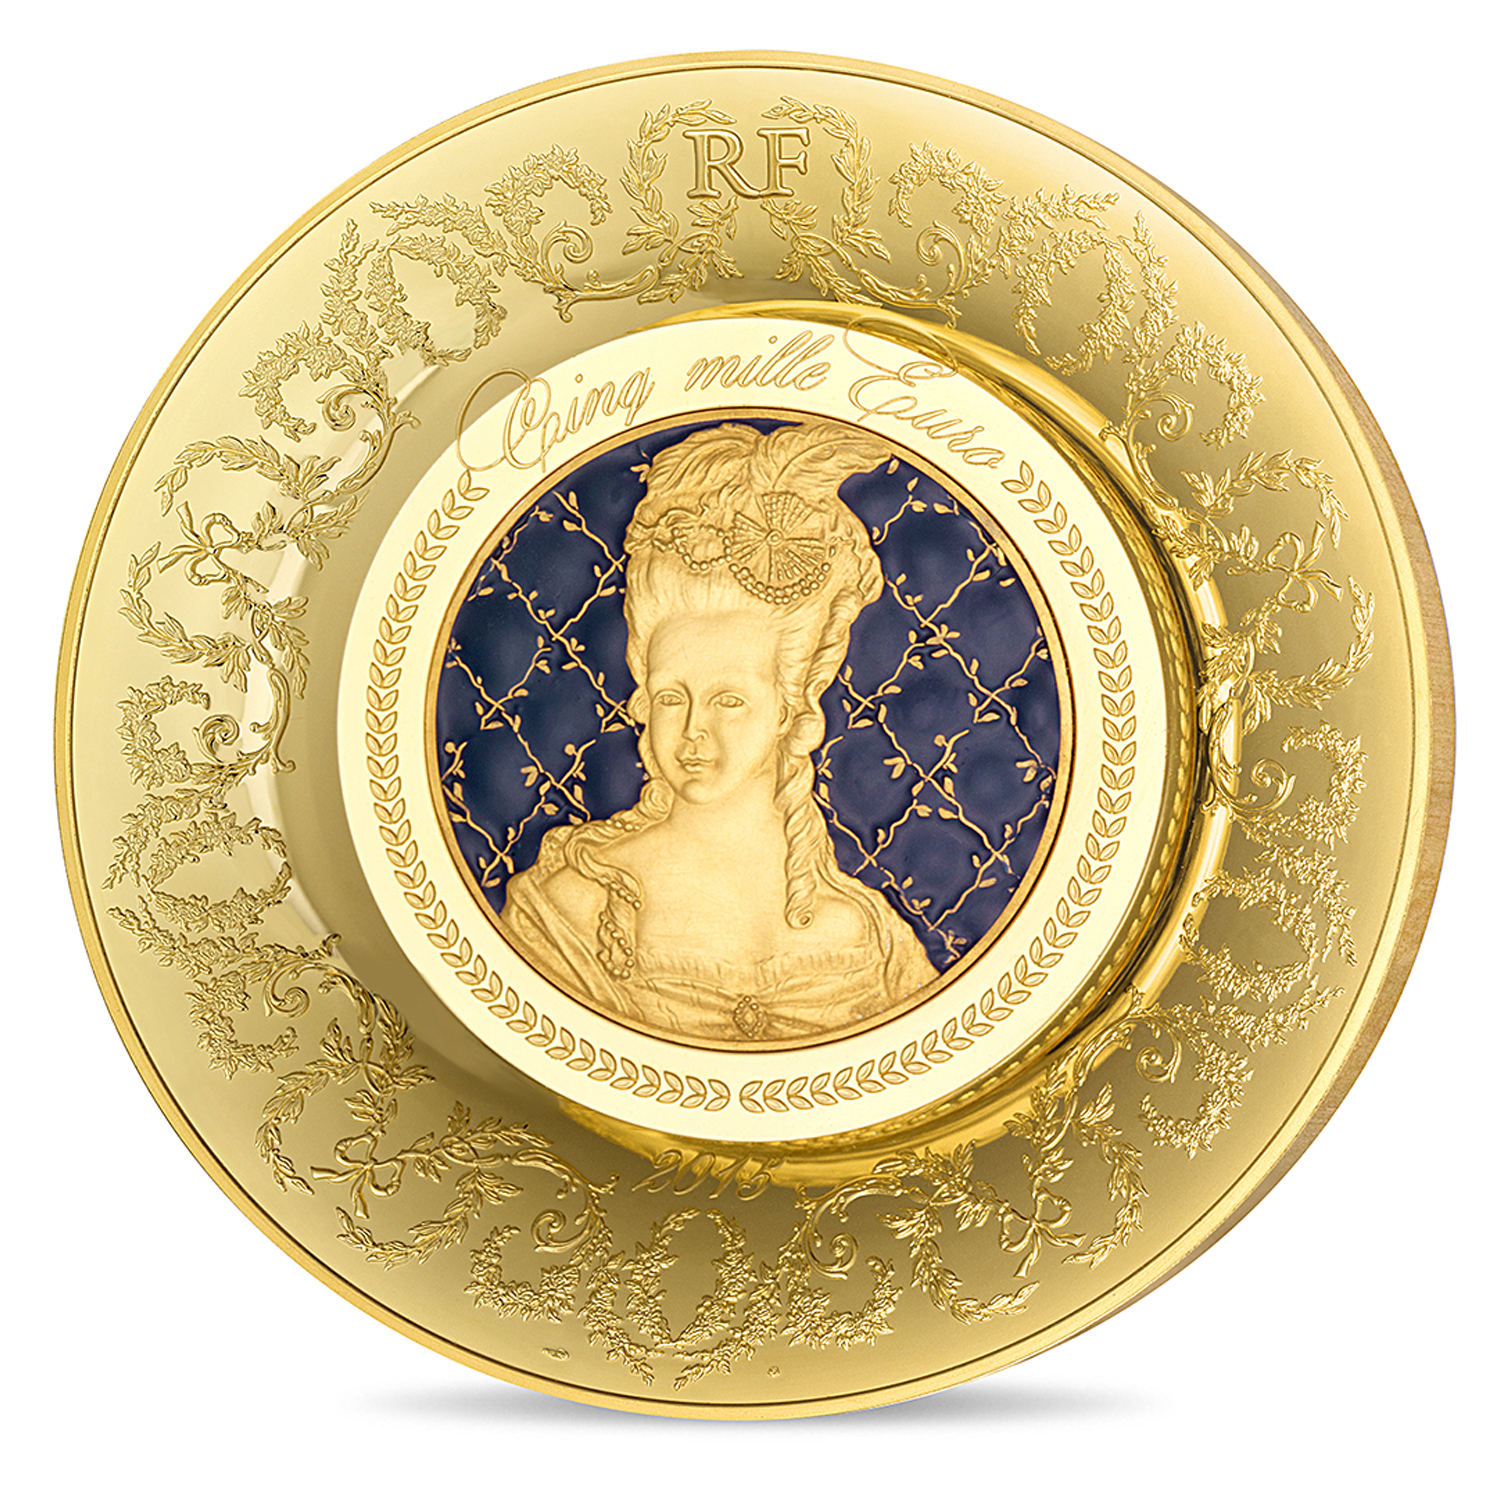 2015 1 kilo Proof Gold €5000 Excellence Series (Grand Feu)